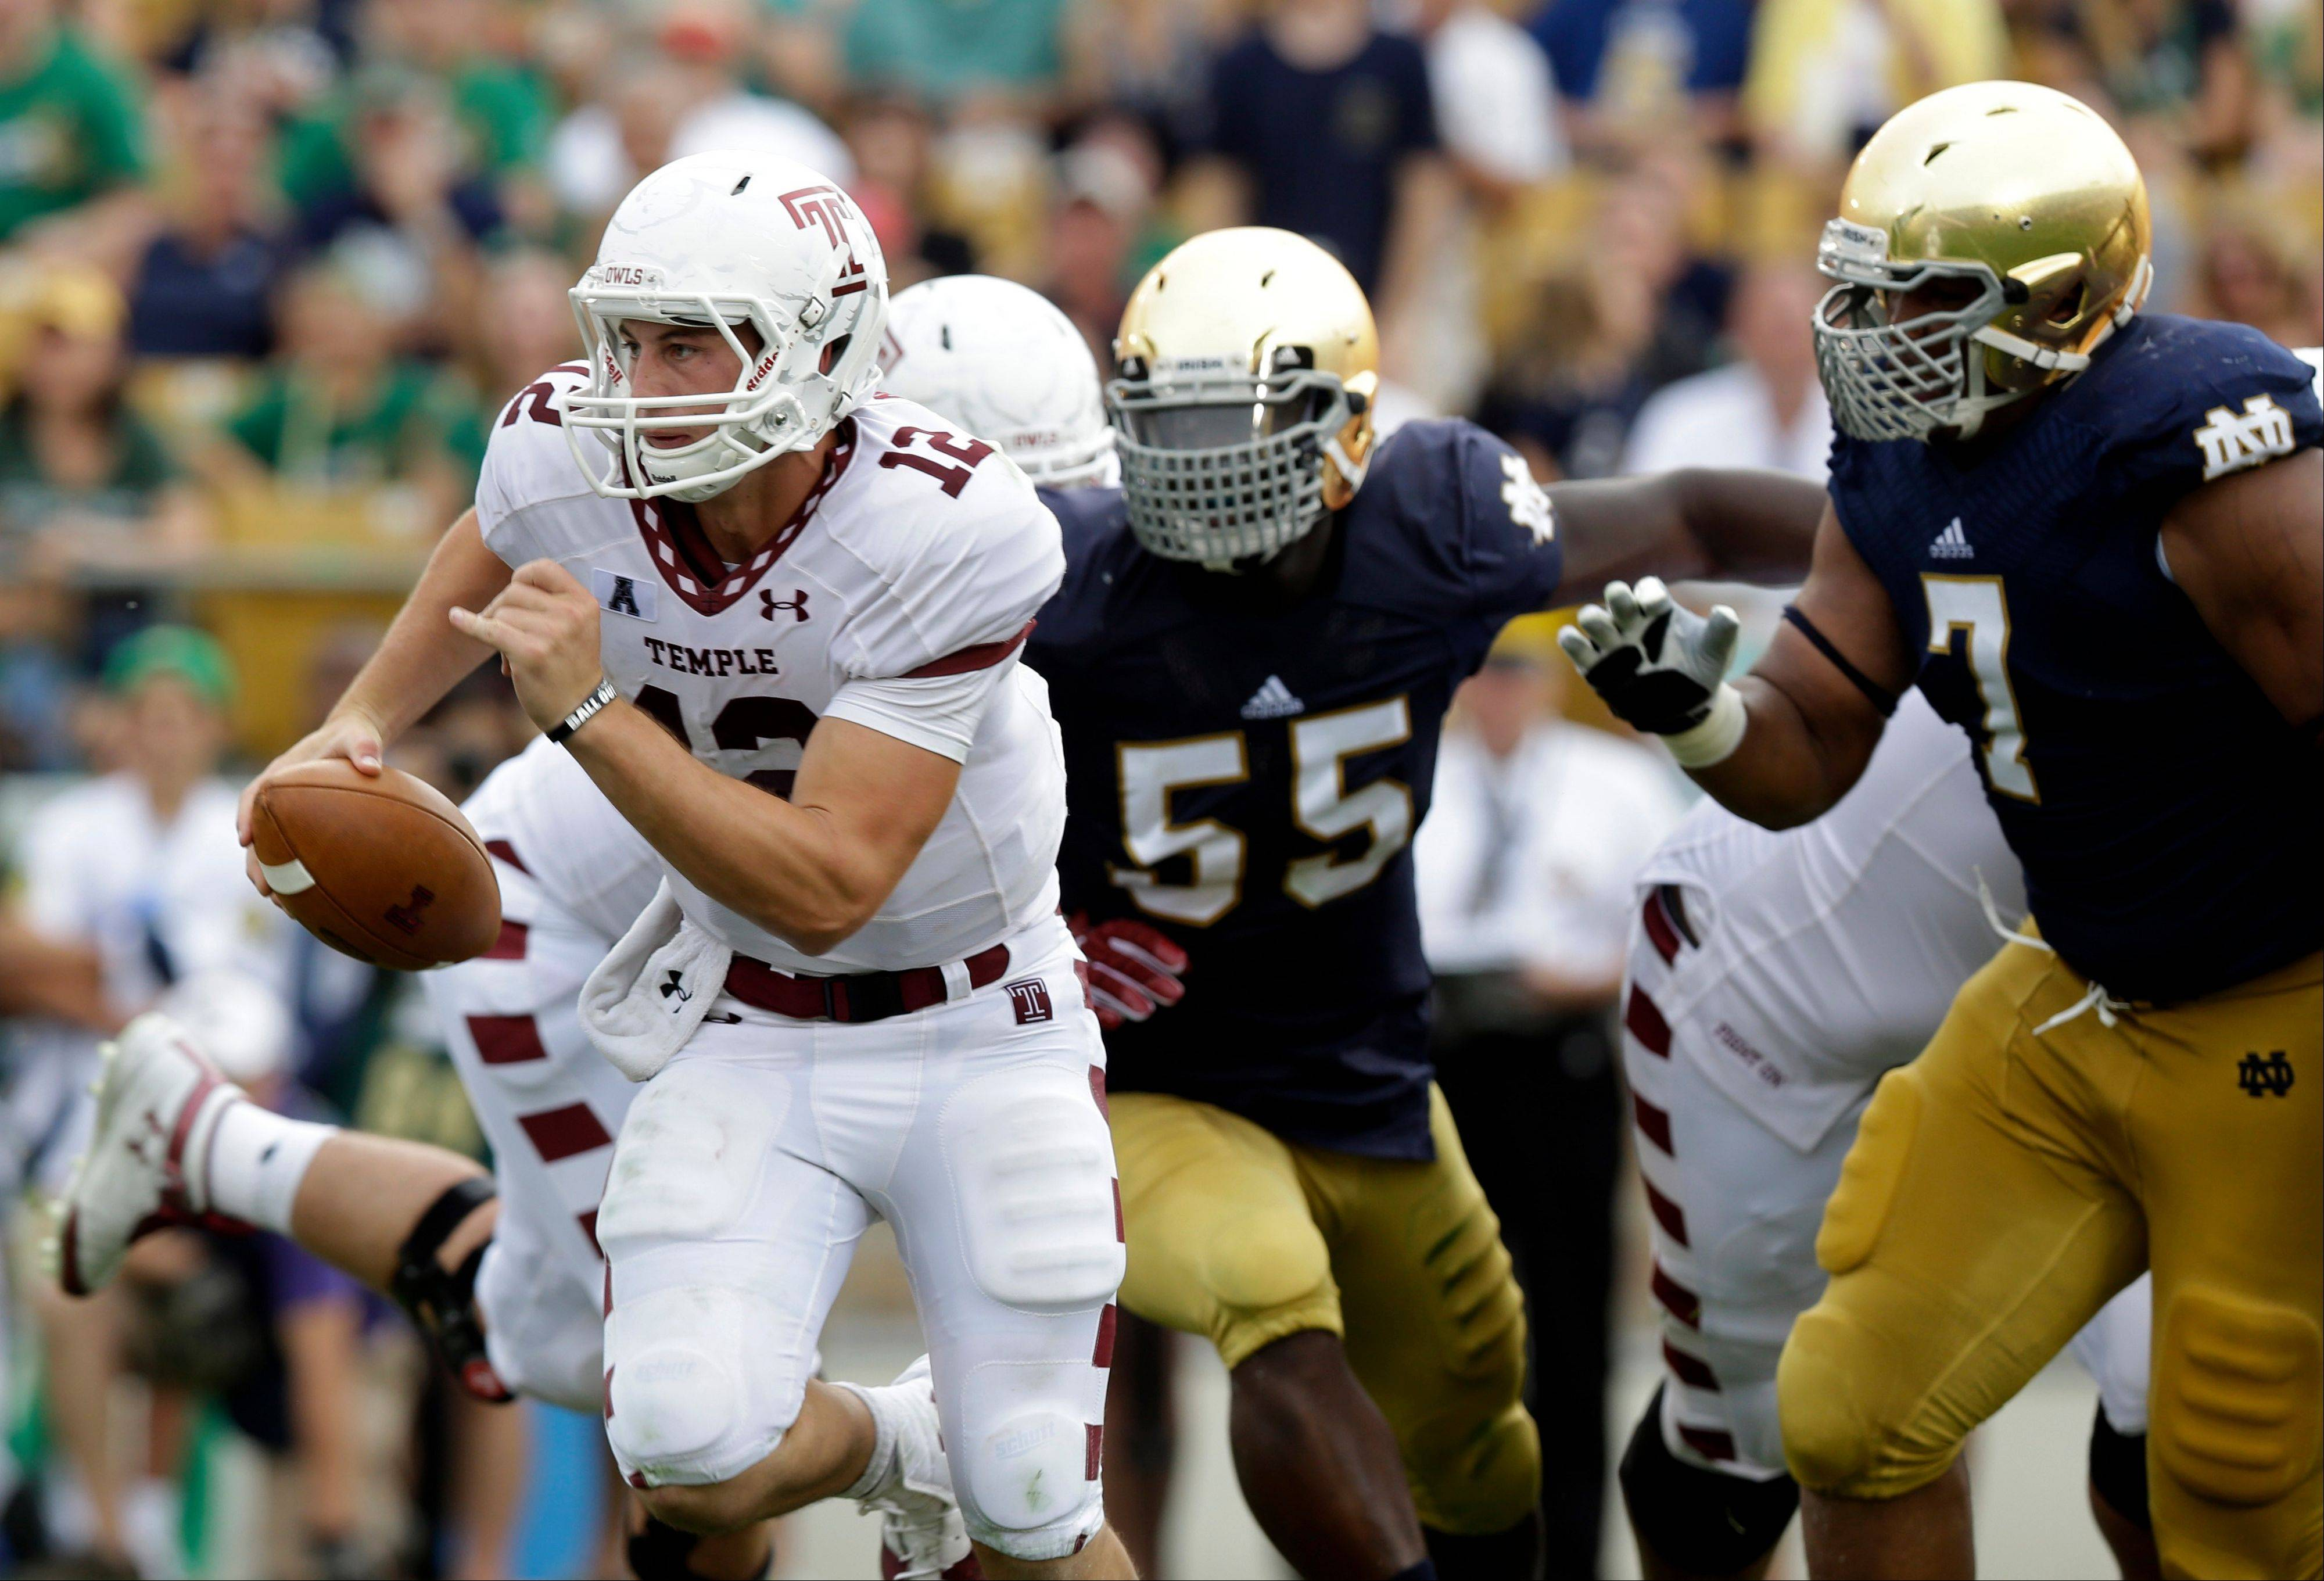 Temple quarterback Connor Reilly scrambles away from Notre Dame's Prince Shembo (55) and Stephon Tuitt during the first half of Saturday's game in South Bend, Ind.